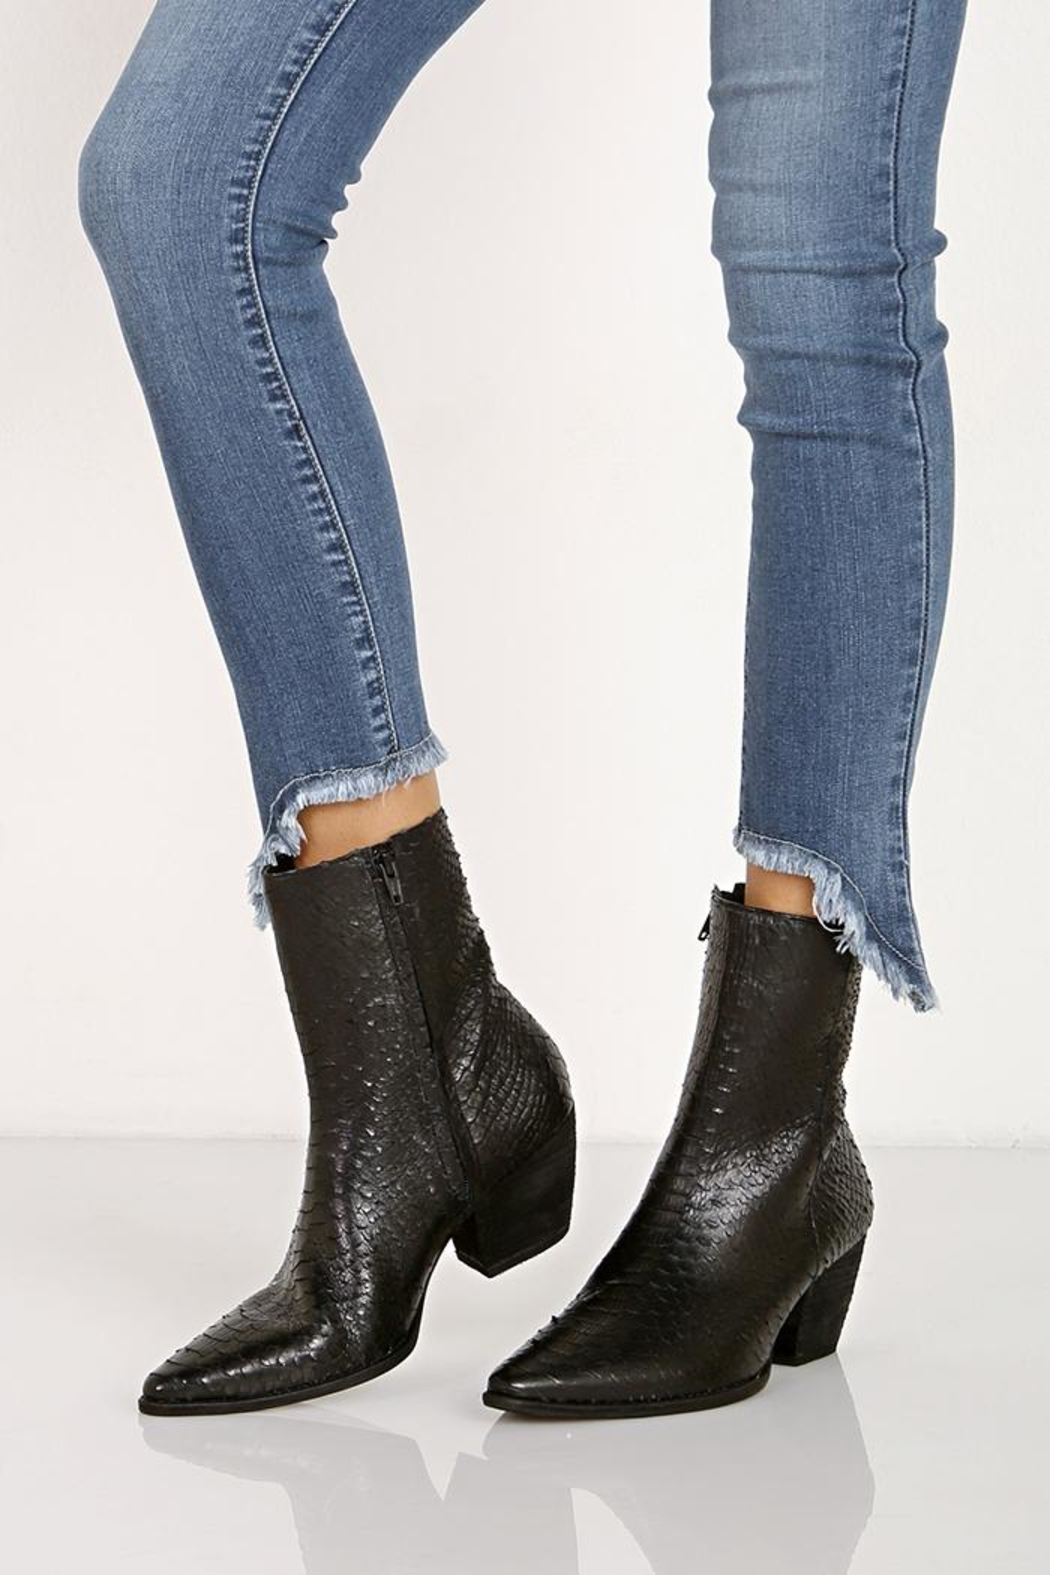 7213c4f1d7f5 Matisse Black Leather Bootie from Indiana by Flirt Boutique ...